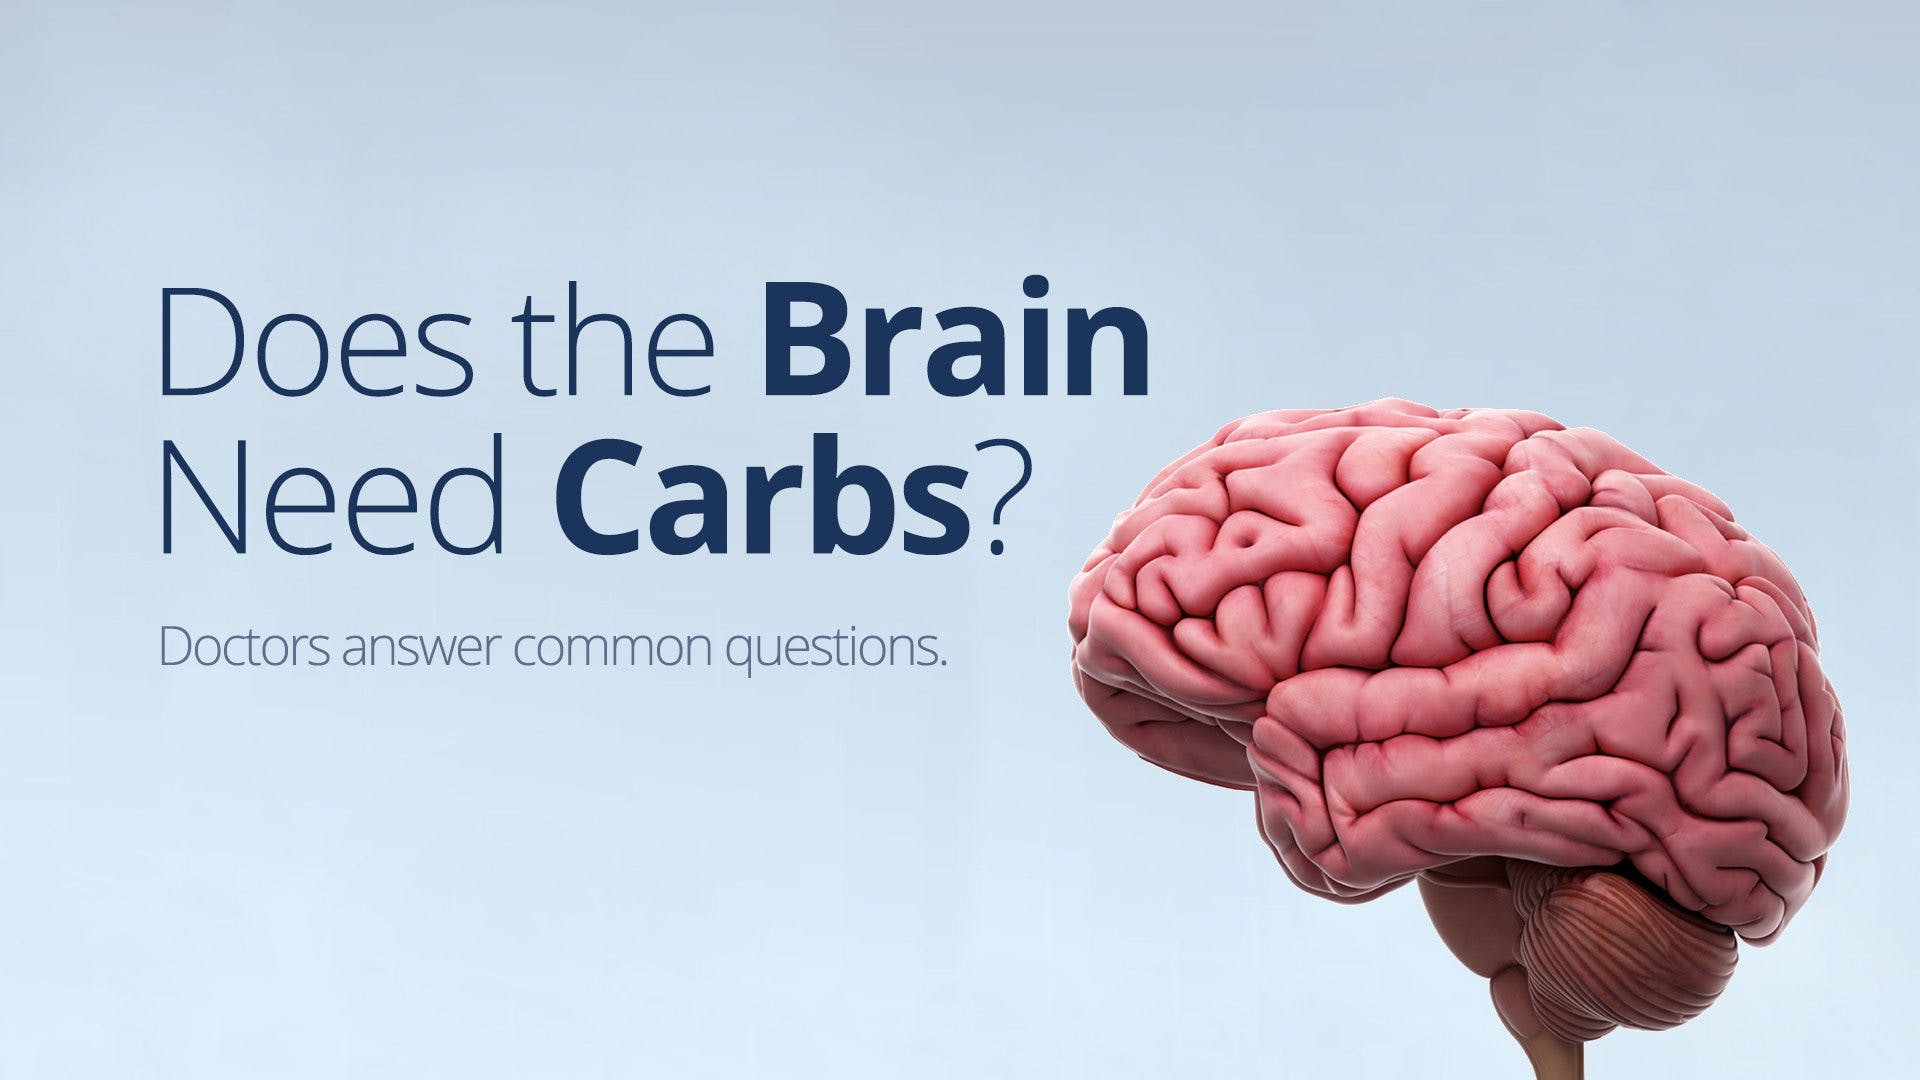 Does the Brain Need Carbohydrates?